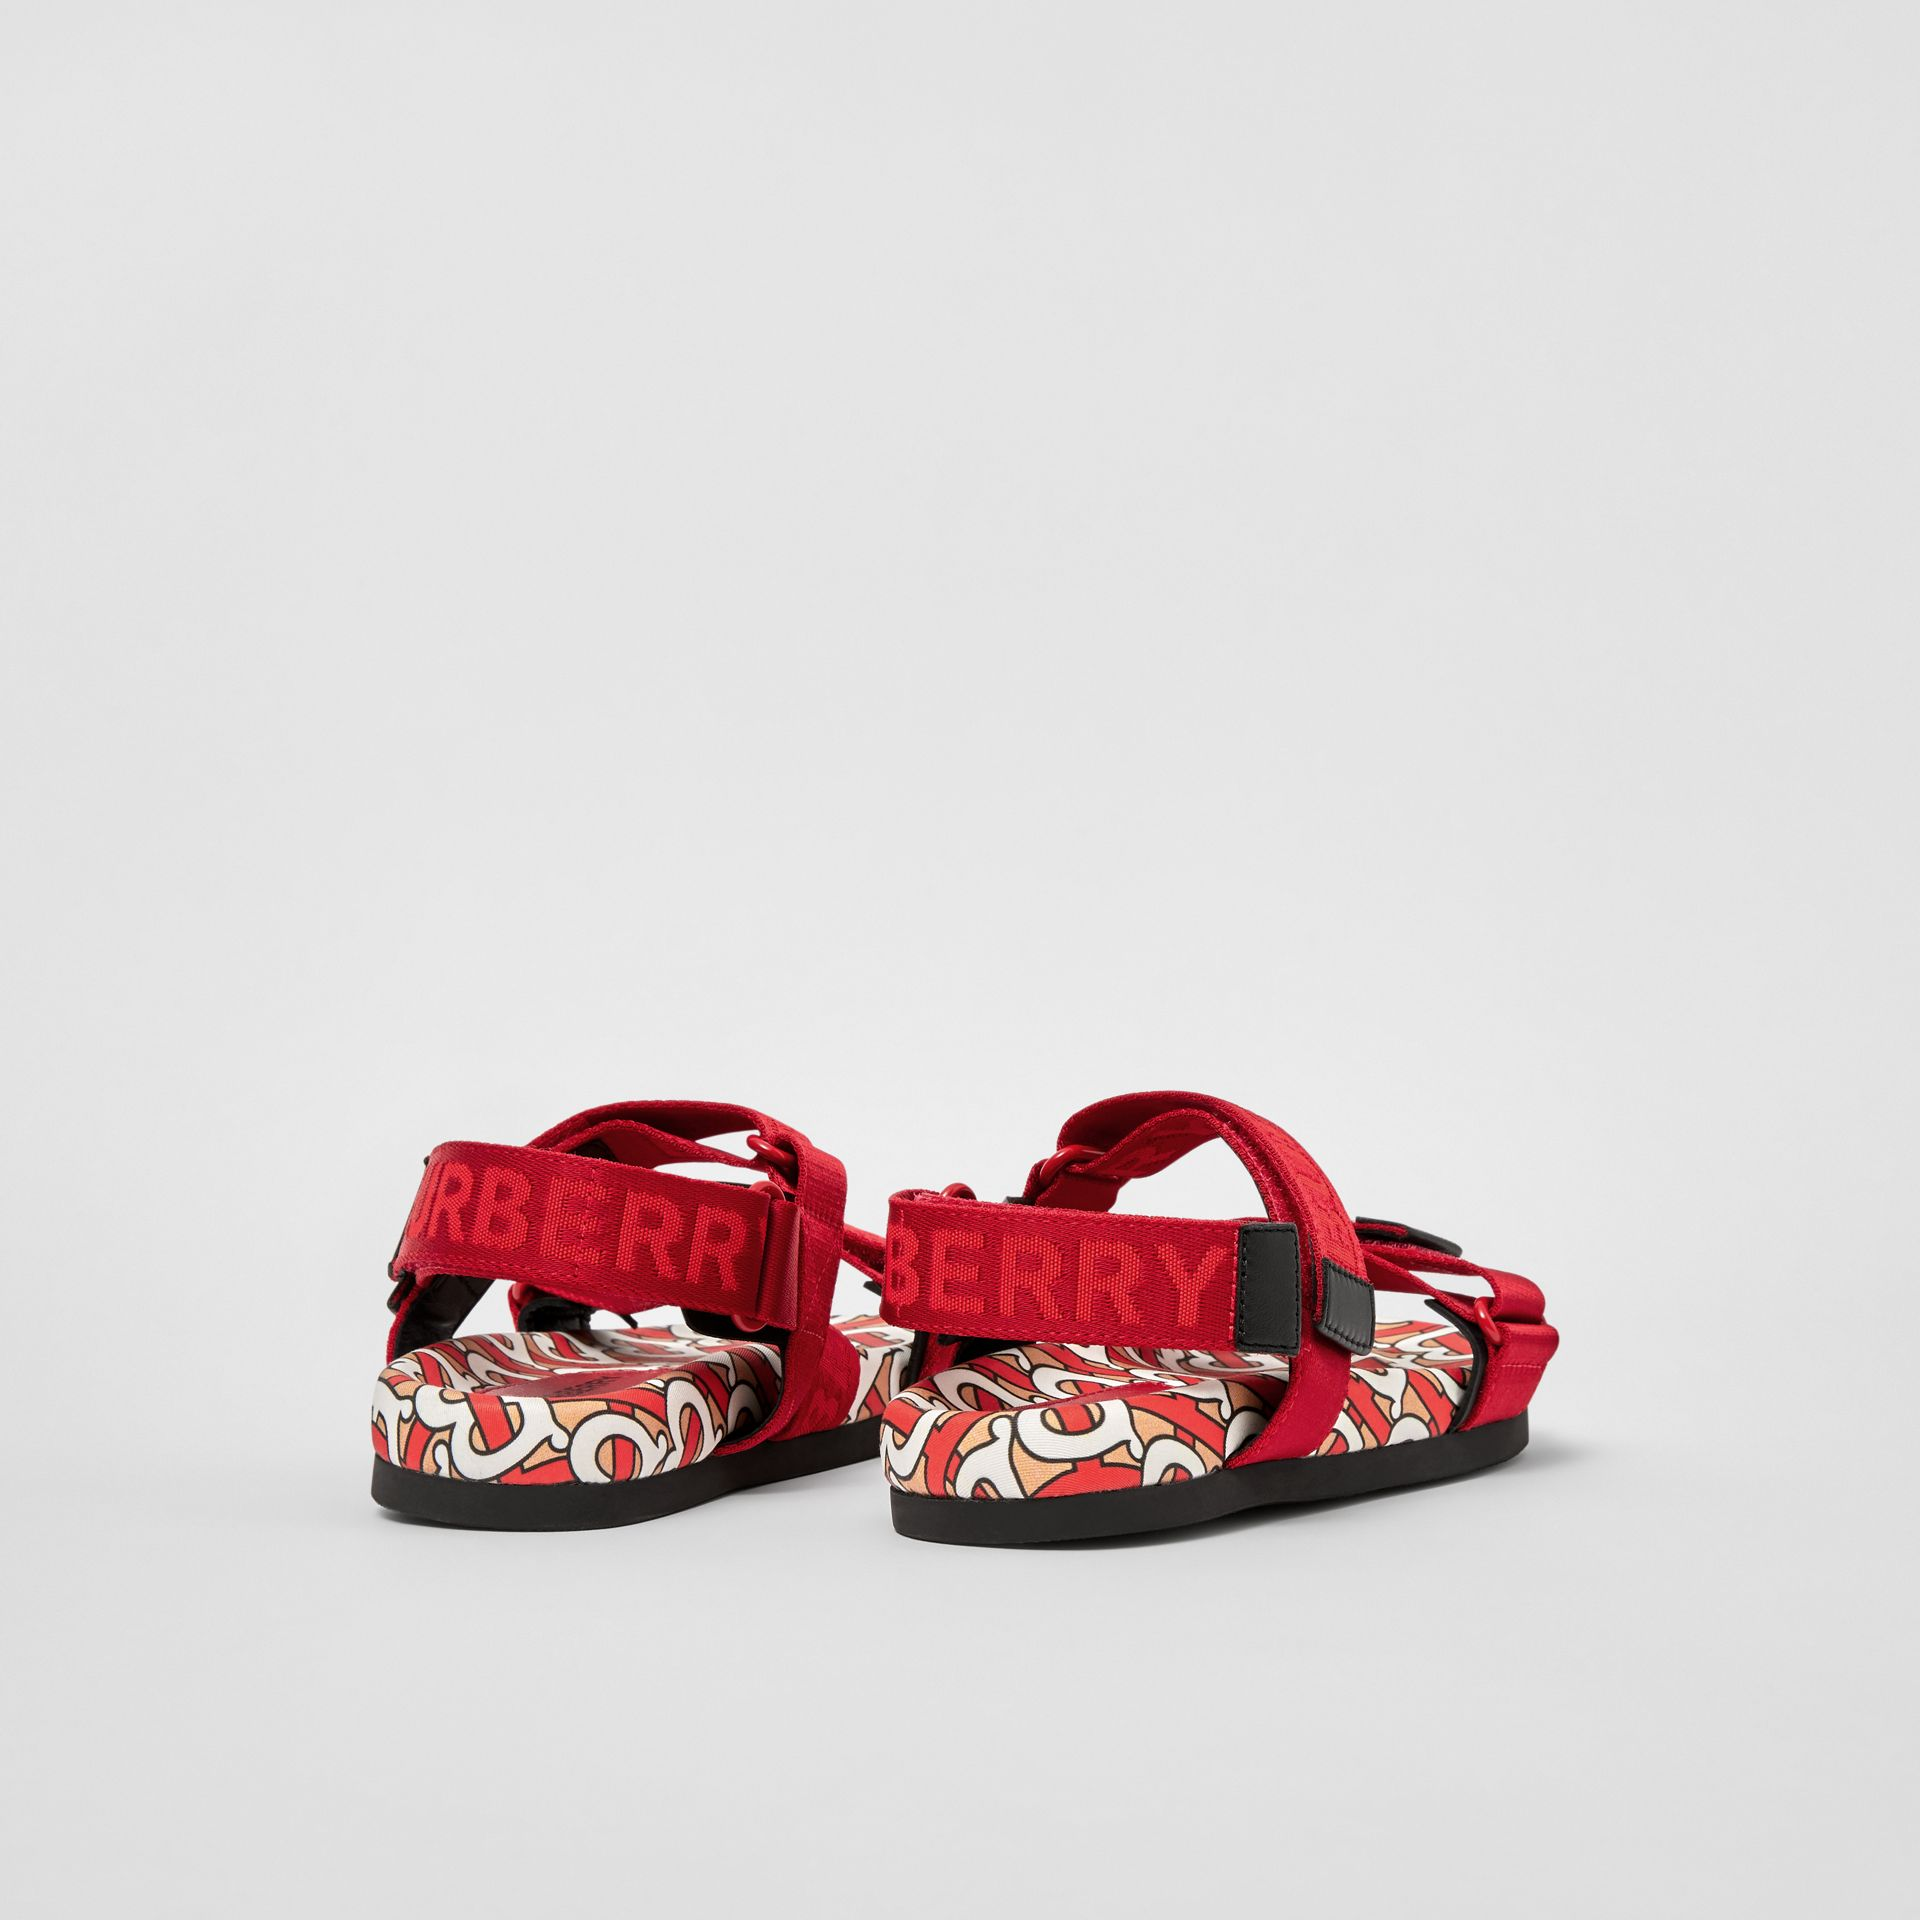 Monogram Print Cotton Gabardine Sandals in Bright Red - Children | Burberry Hong Kong S.A.R - gallery image 2